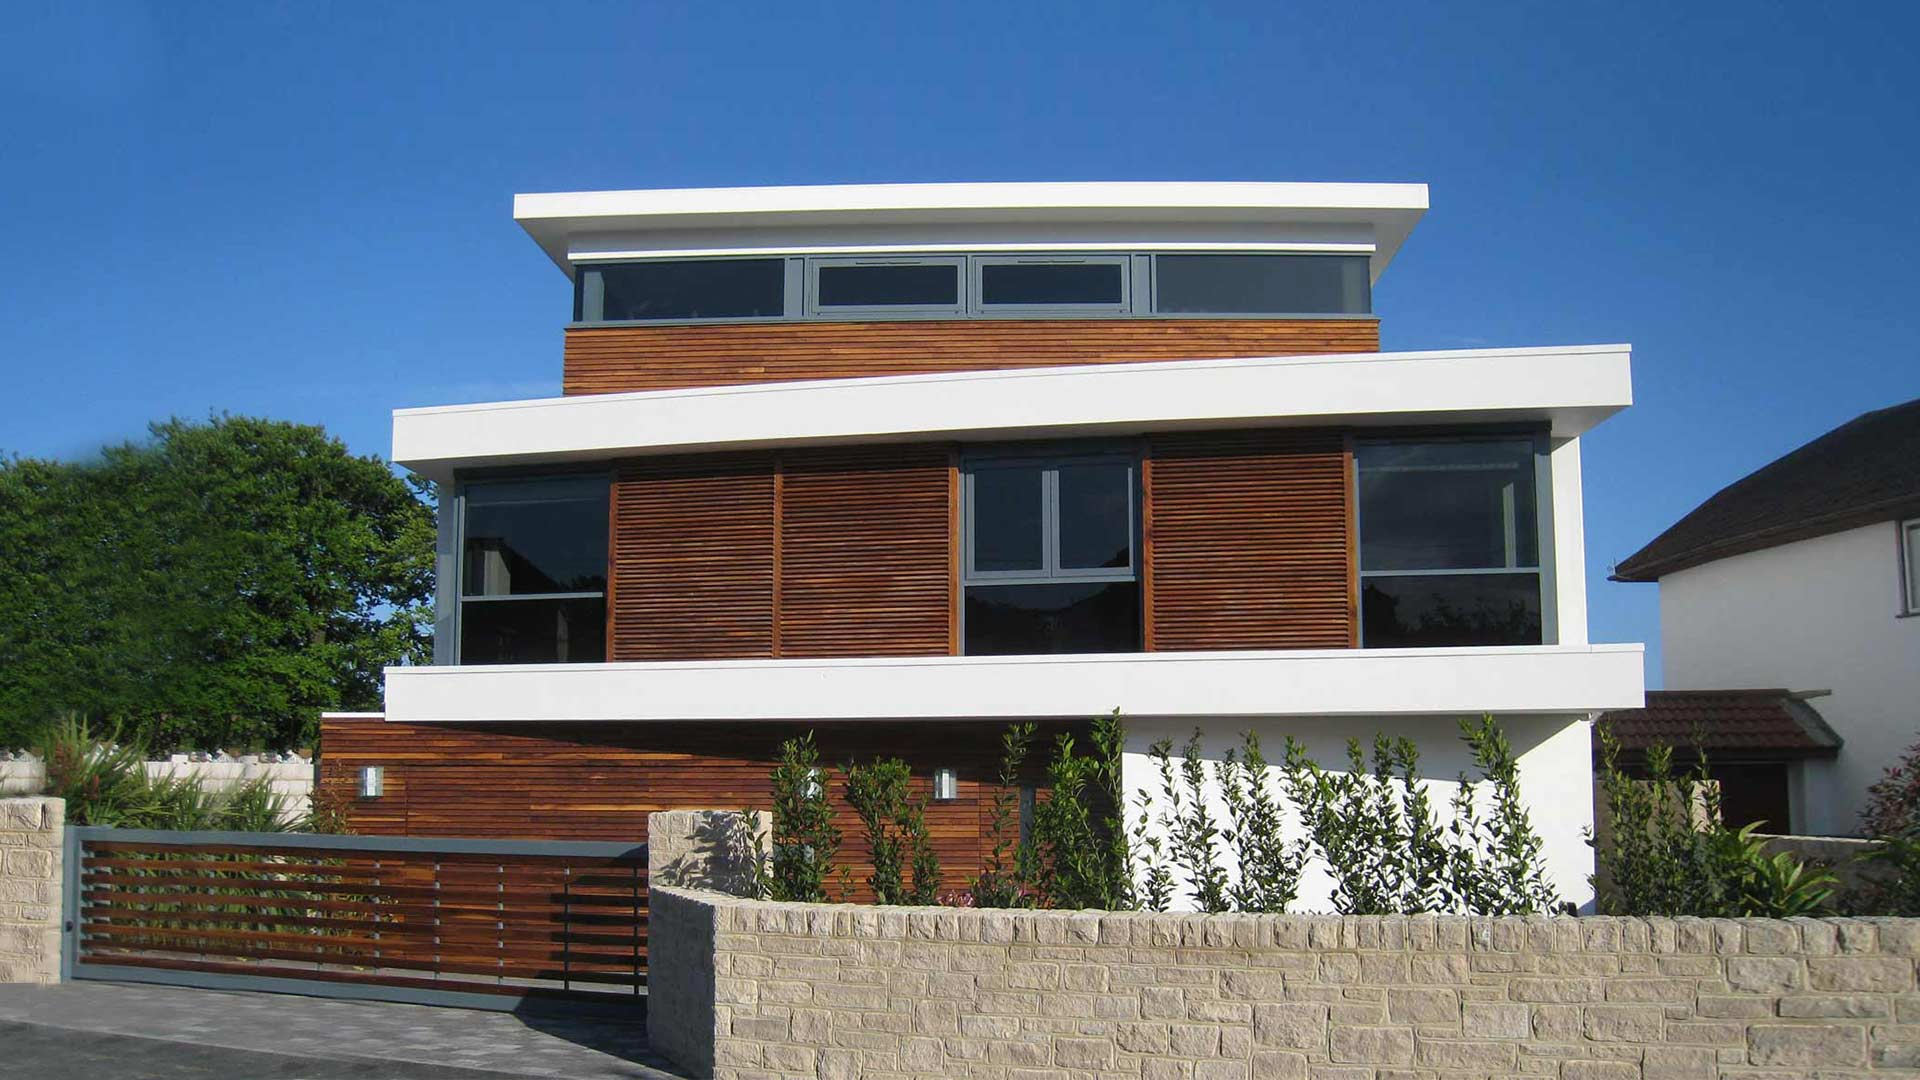 Waterside house poole harbour dorset western design - Architects poole dorset ...